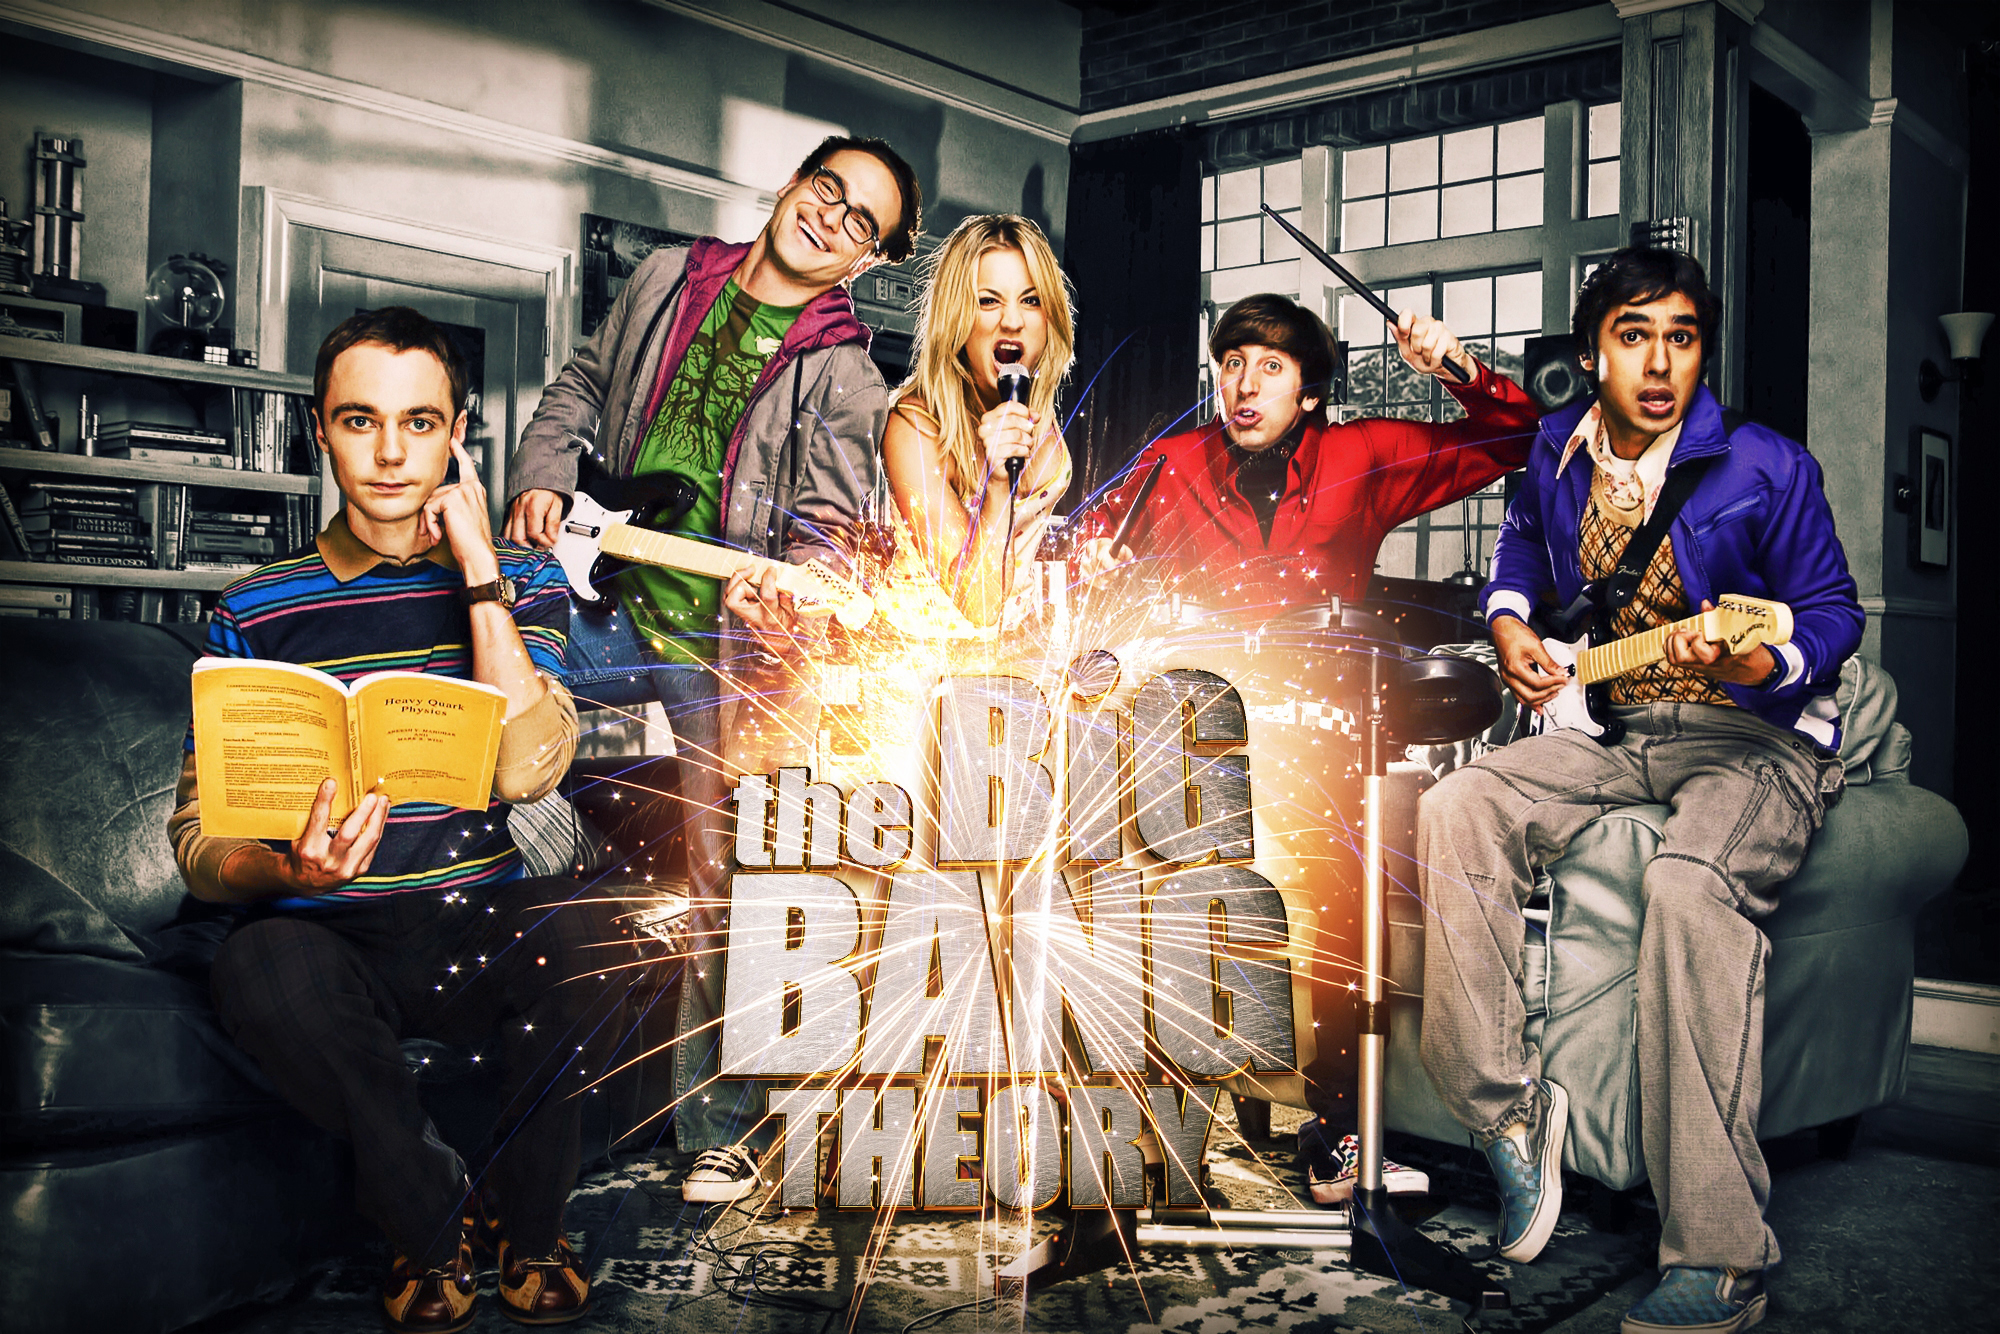 Thebigbangtheory-the-big-bang-theory-30537623-2000-1334